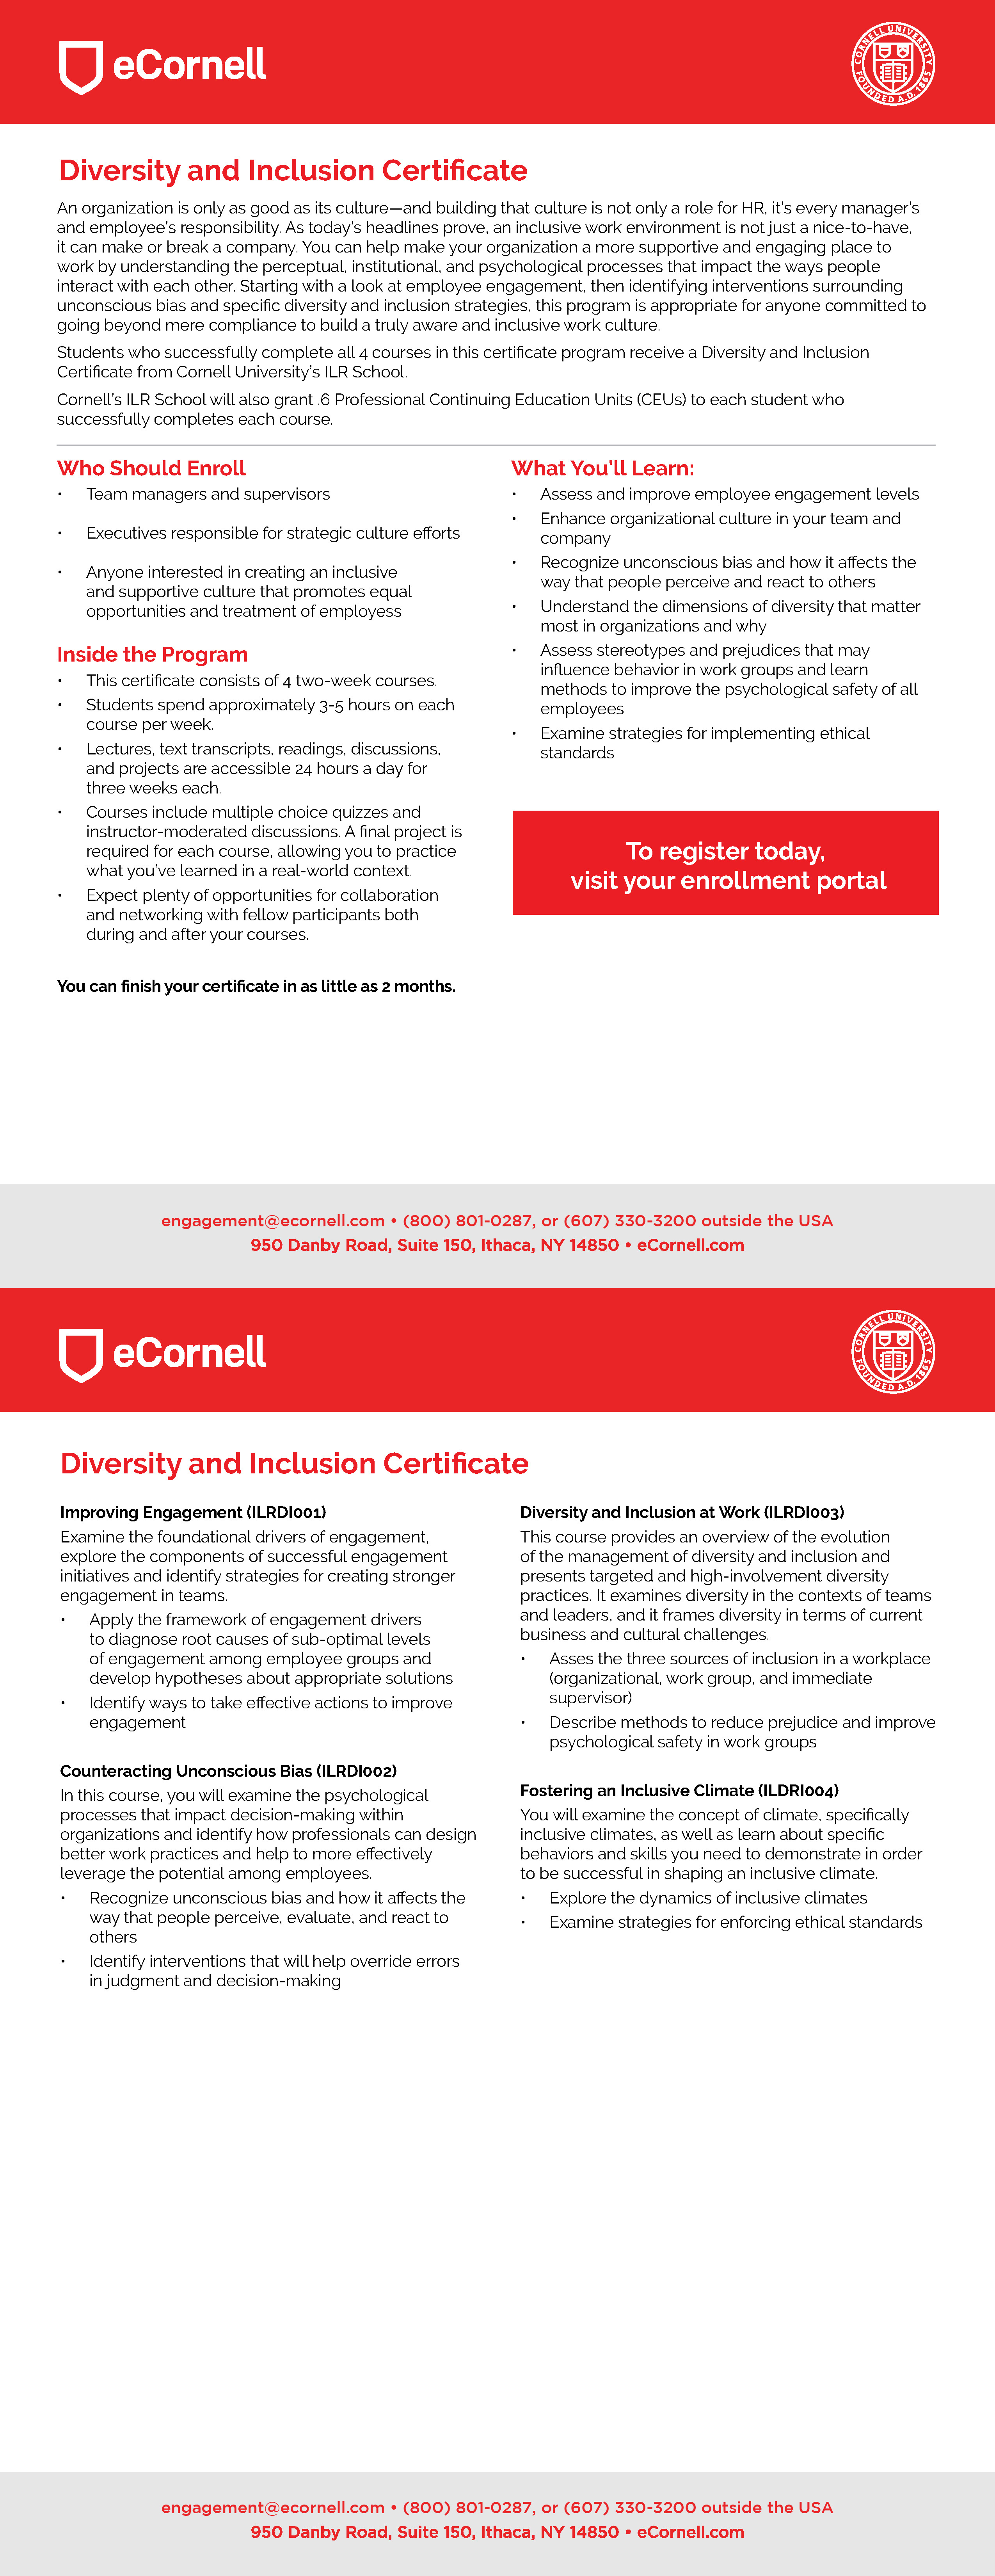 Diversity and Inclusion Flyer